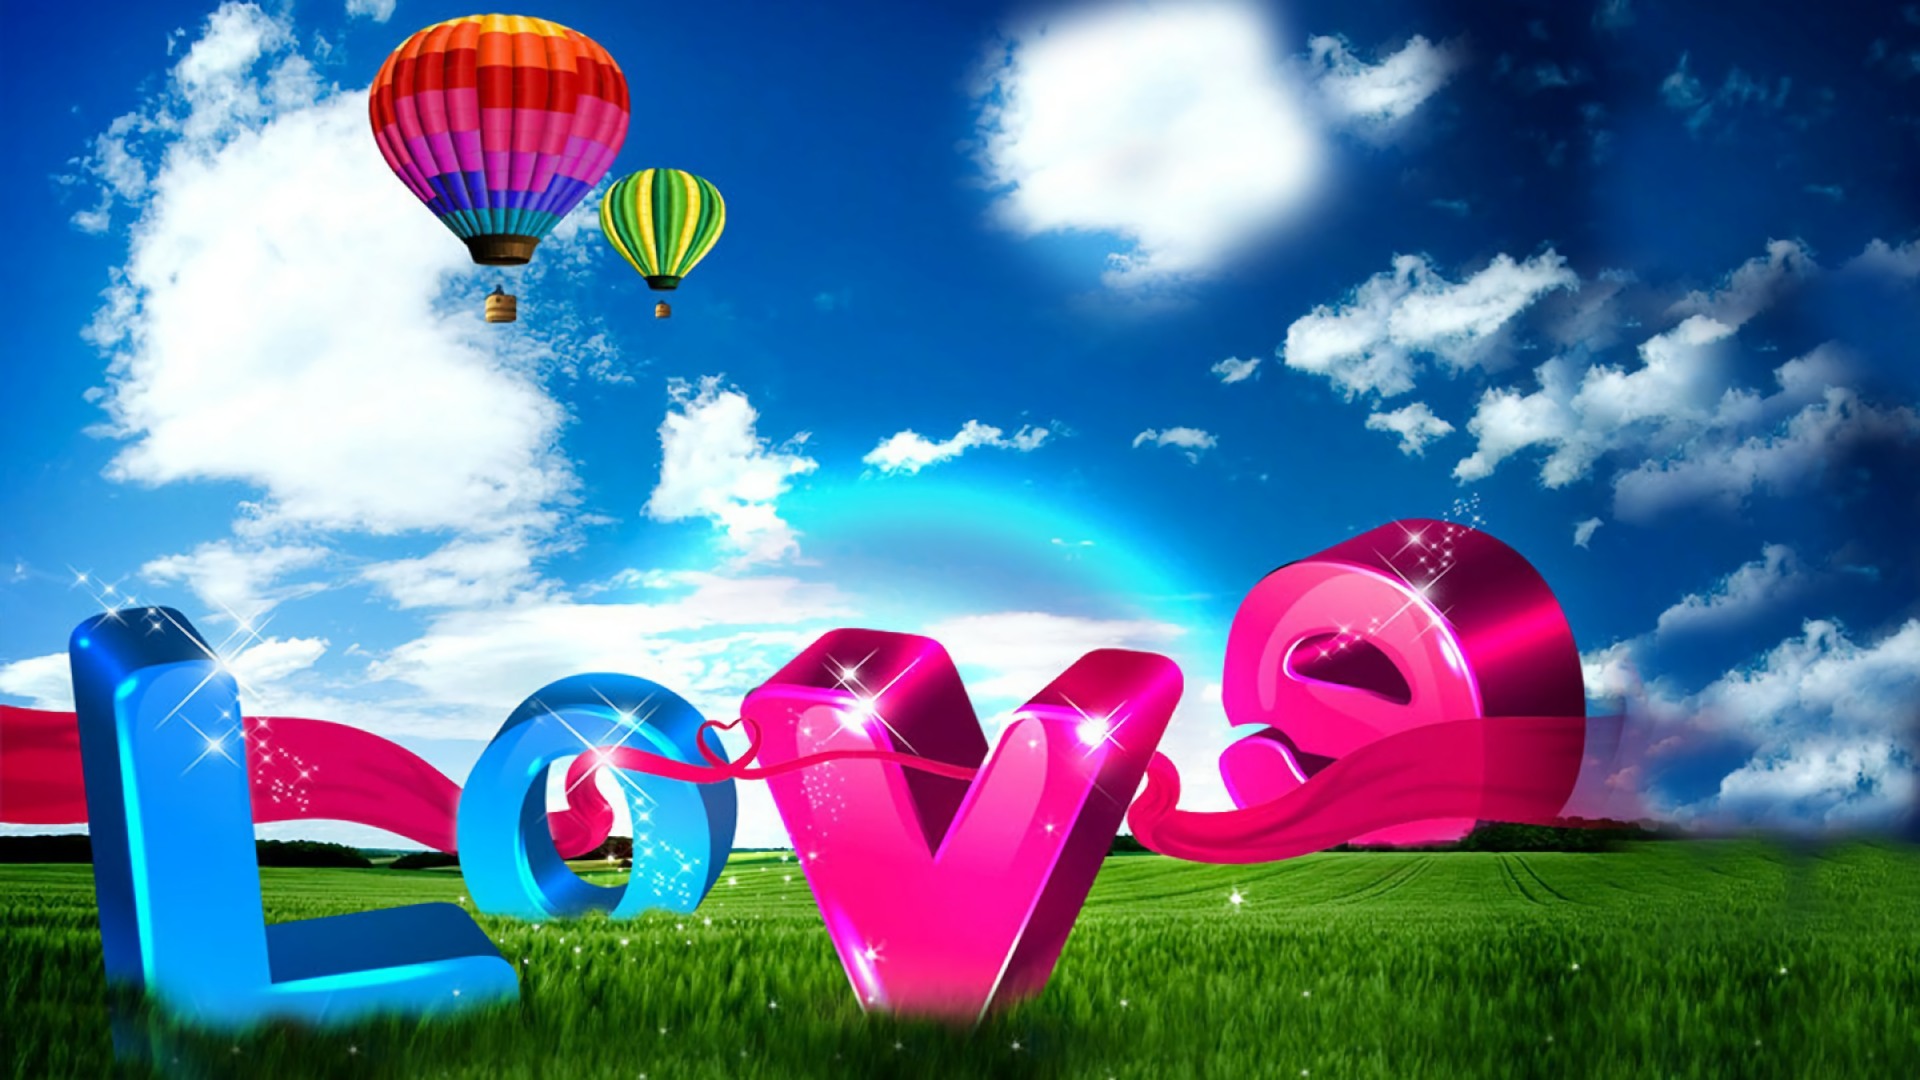 Love Hd Wallpaper Background Image 1920x1080 Id 778747